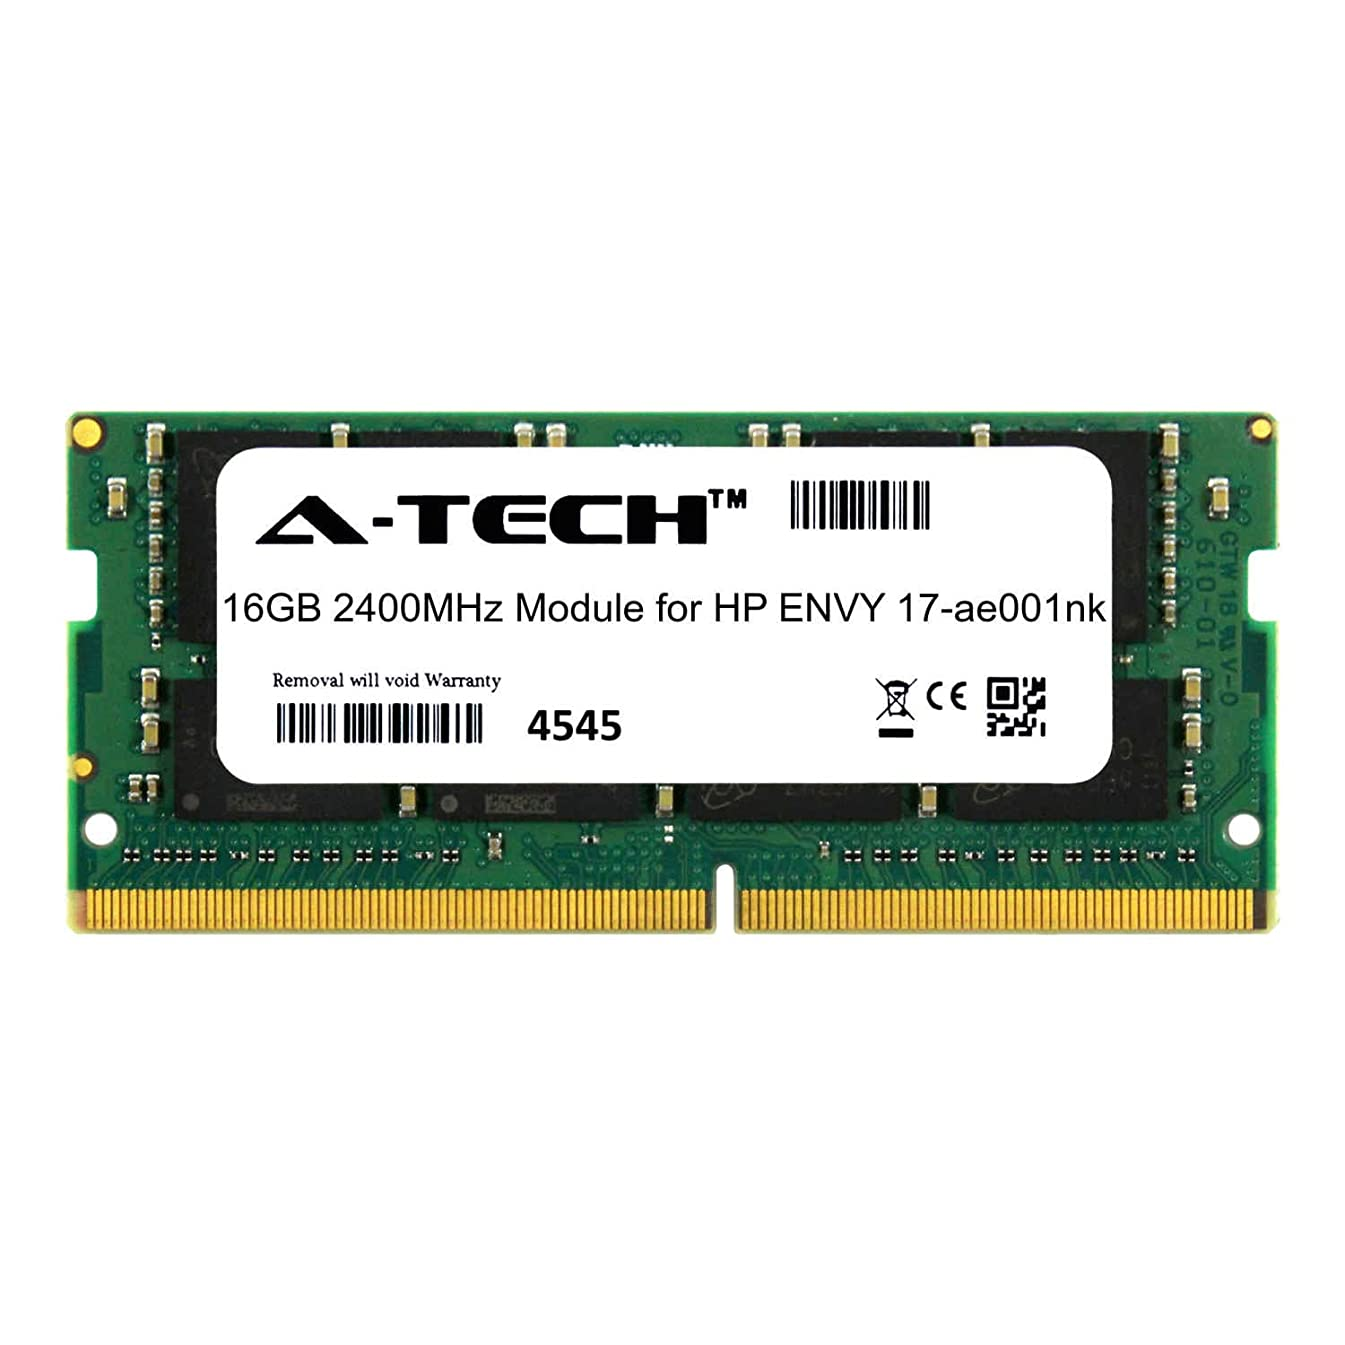 A-Tech 16GB Module for HP Envy 17-ae001nk Laptop & Notebook Compatible DDR4 2400Mhz Memory Ram (ATMS273840A25831X1)